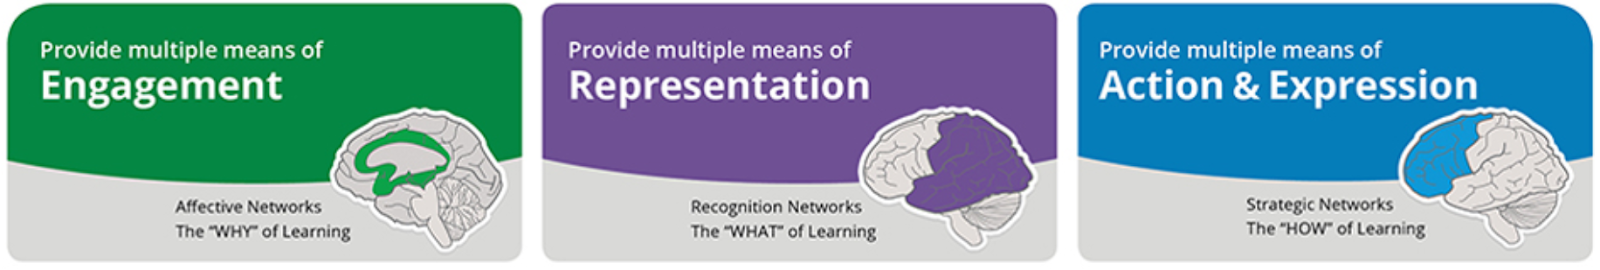 the 3 principles of UDL: Engagement, Representation, Action & Expression